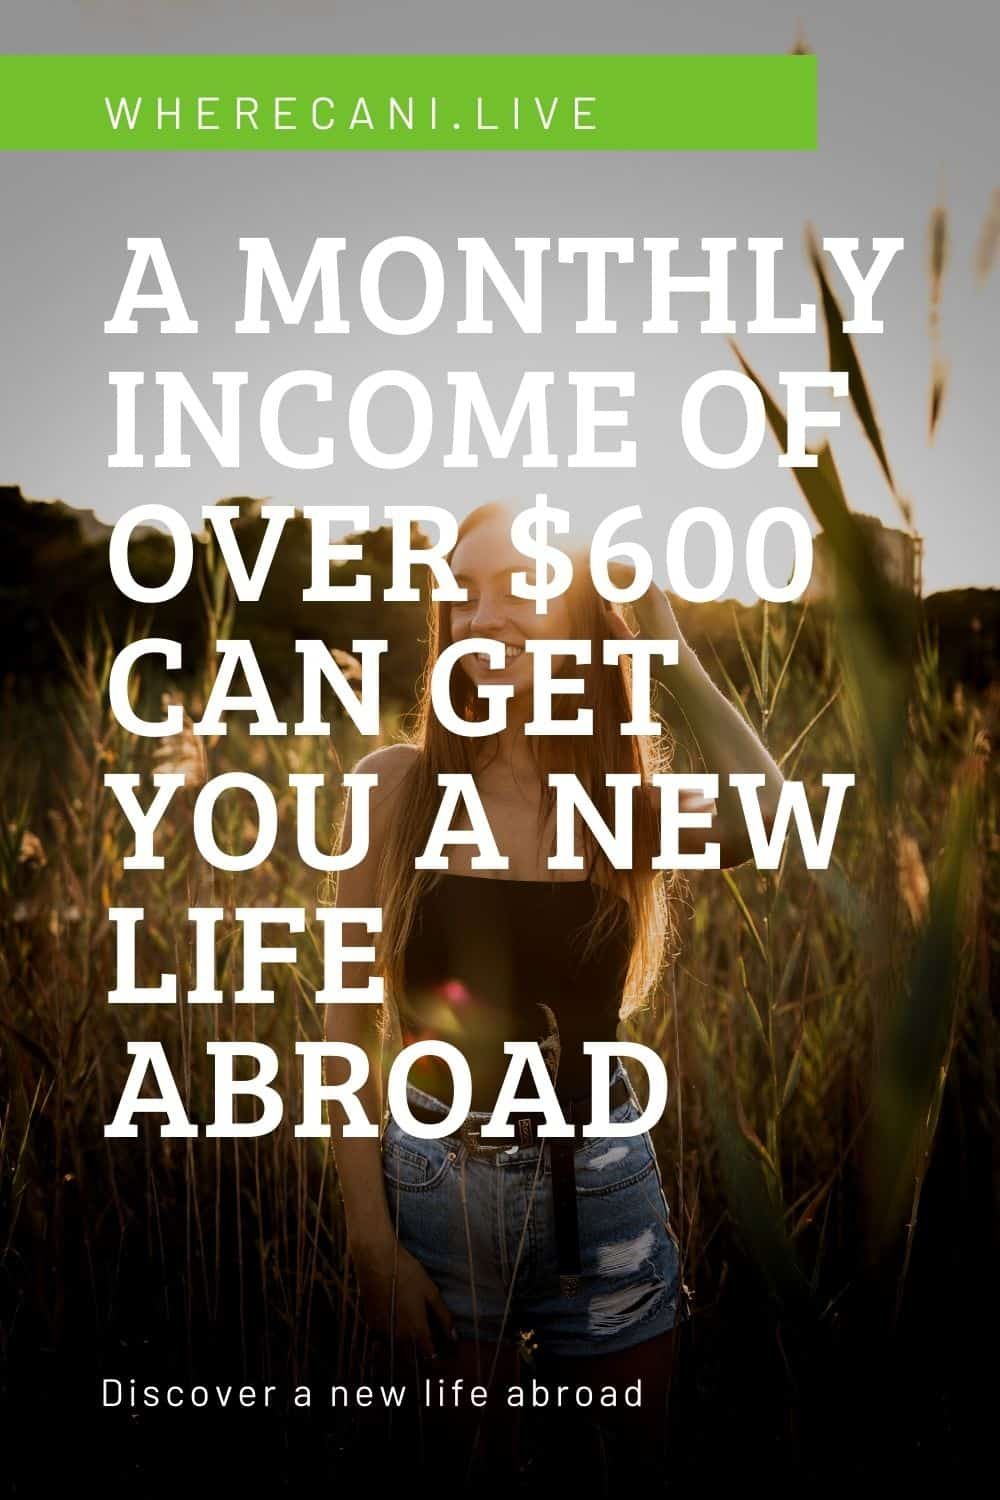 There are so many income based visas aroudn the world to get.  You just need to show that you can support yourself. #visas #income #expat #moveabroad via @wherecanilive